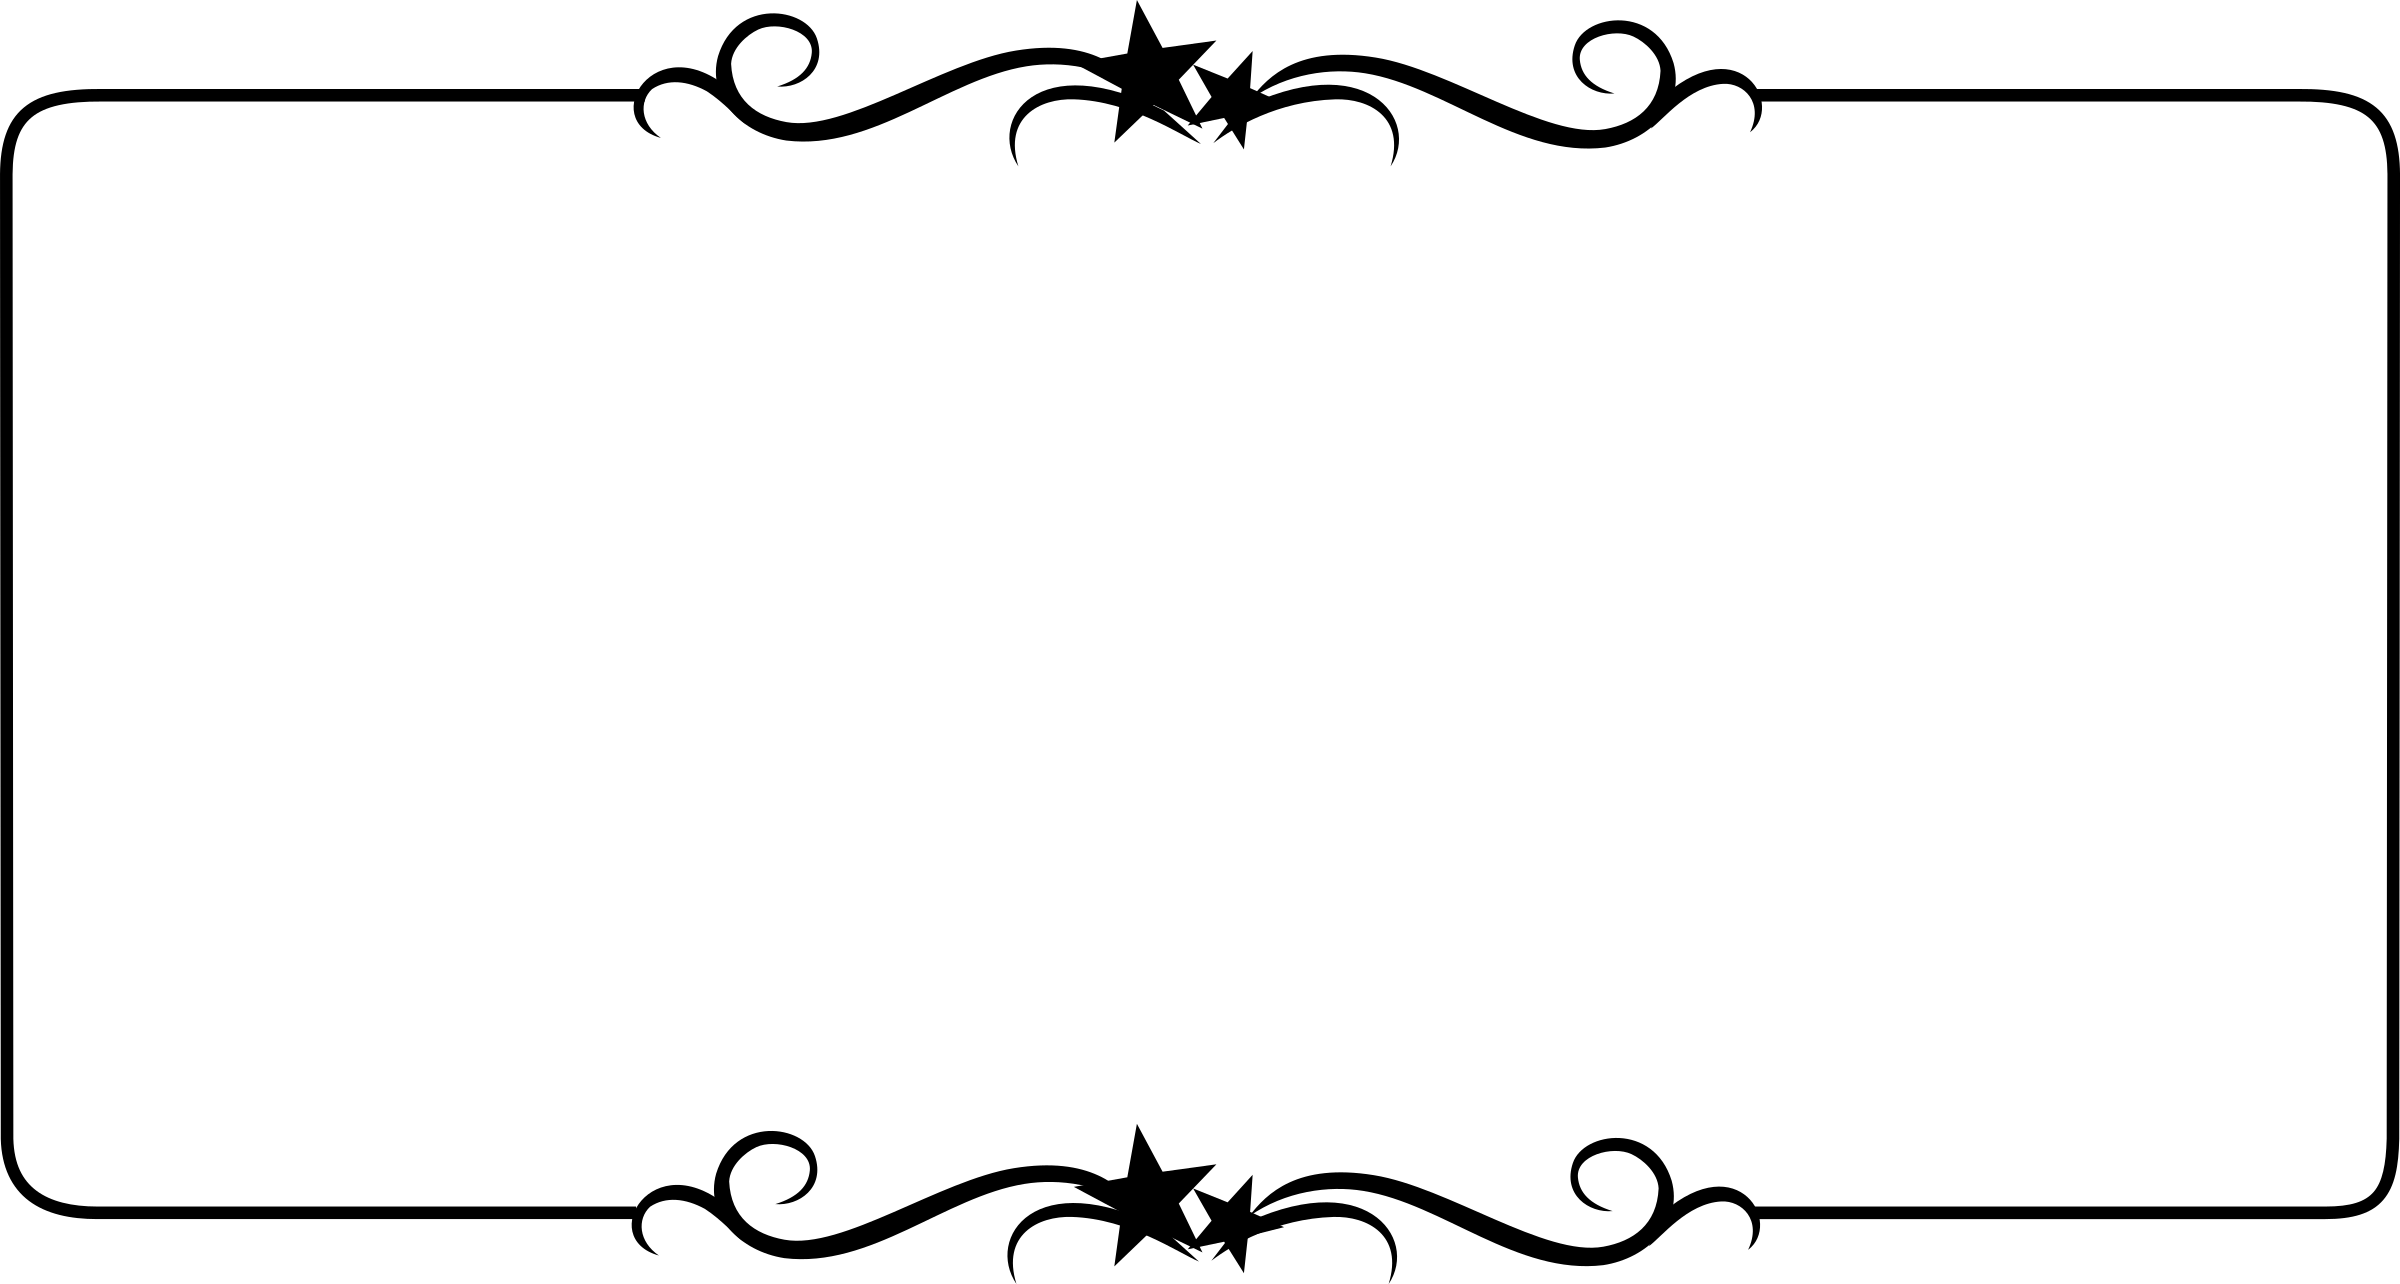 Knight Clipart Border Knight Border Transparent Free For